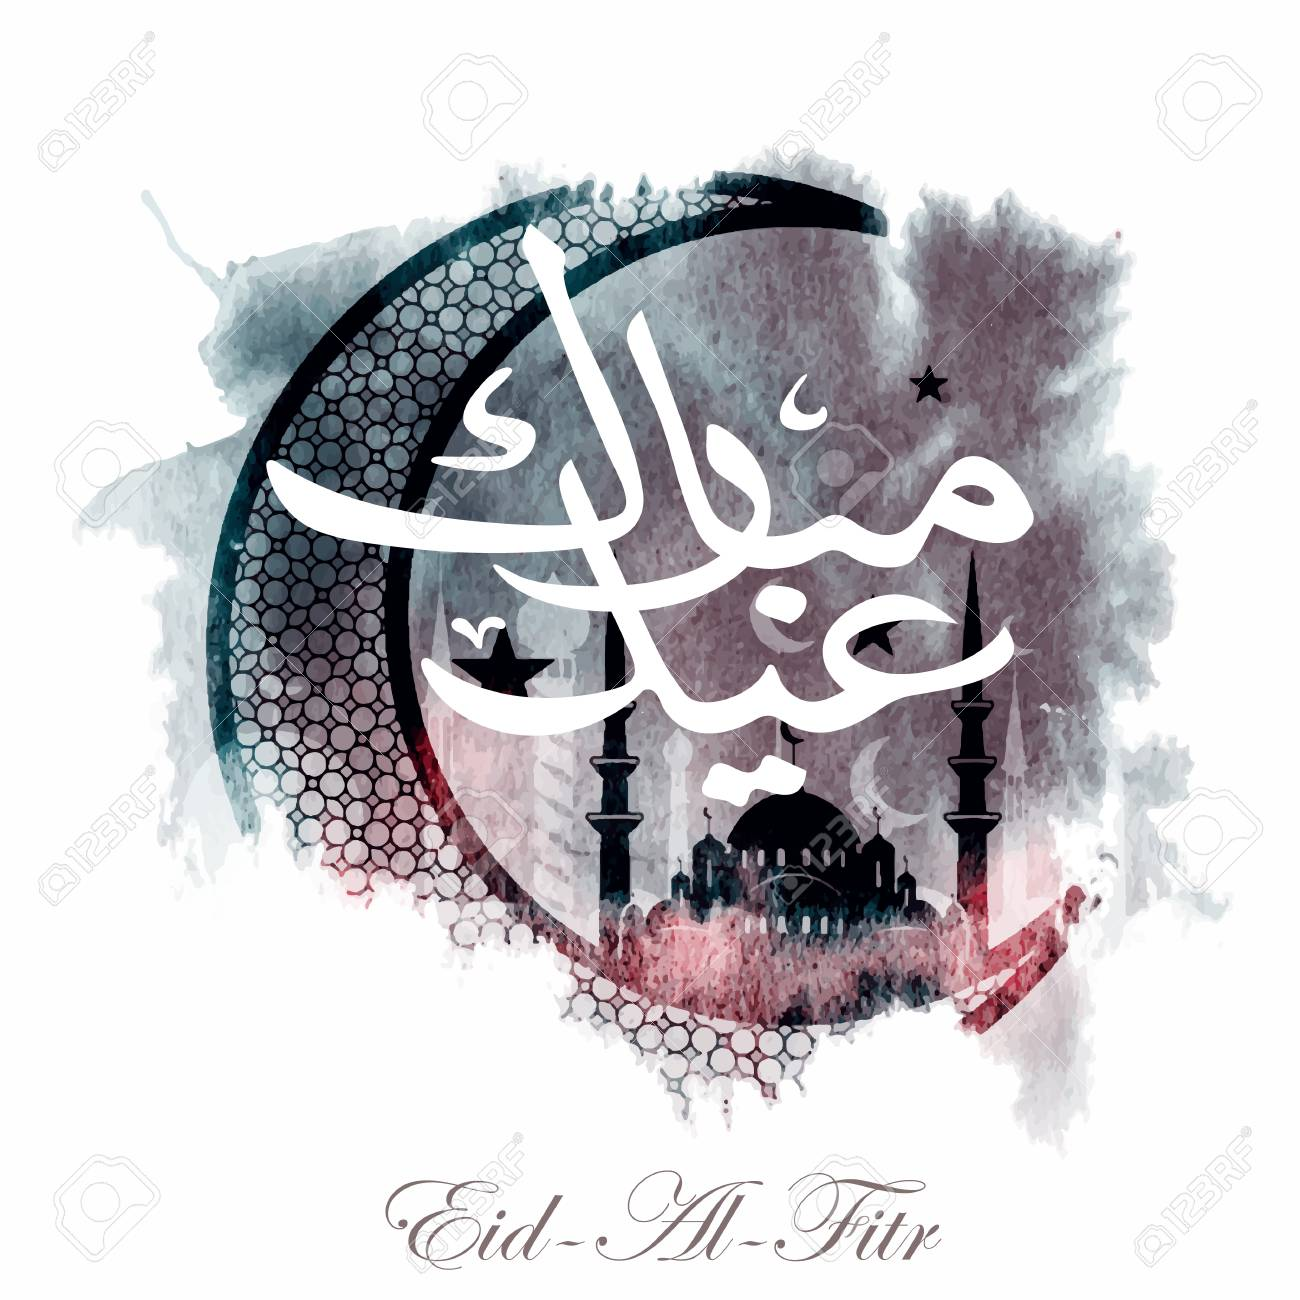 Simple Arabic Eid Al-Fitr Feast - 77678342-calligraphy-of-arabic-text-eid-al-fitr-feast-of-breaking-the-fast-holiday-greeting-card-in-retro-sty  Pic_159816 .jpg